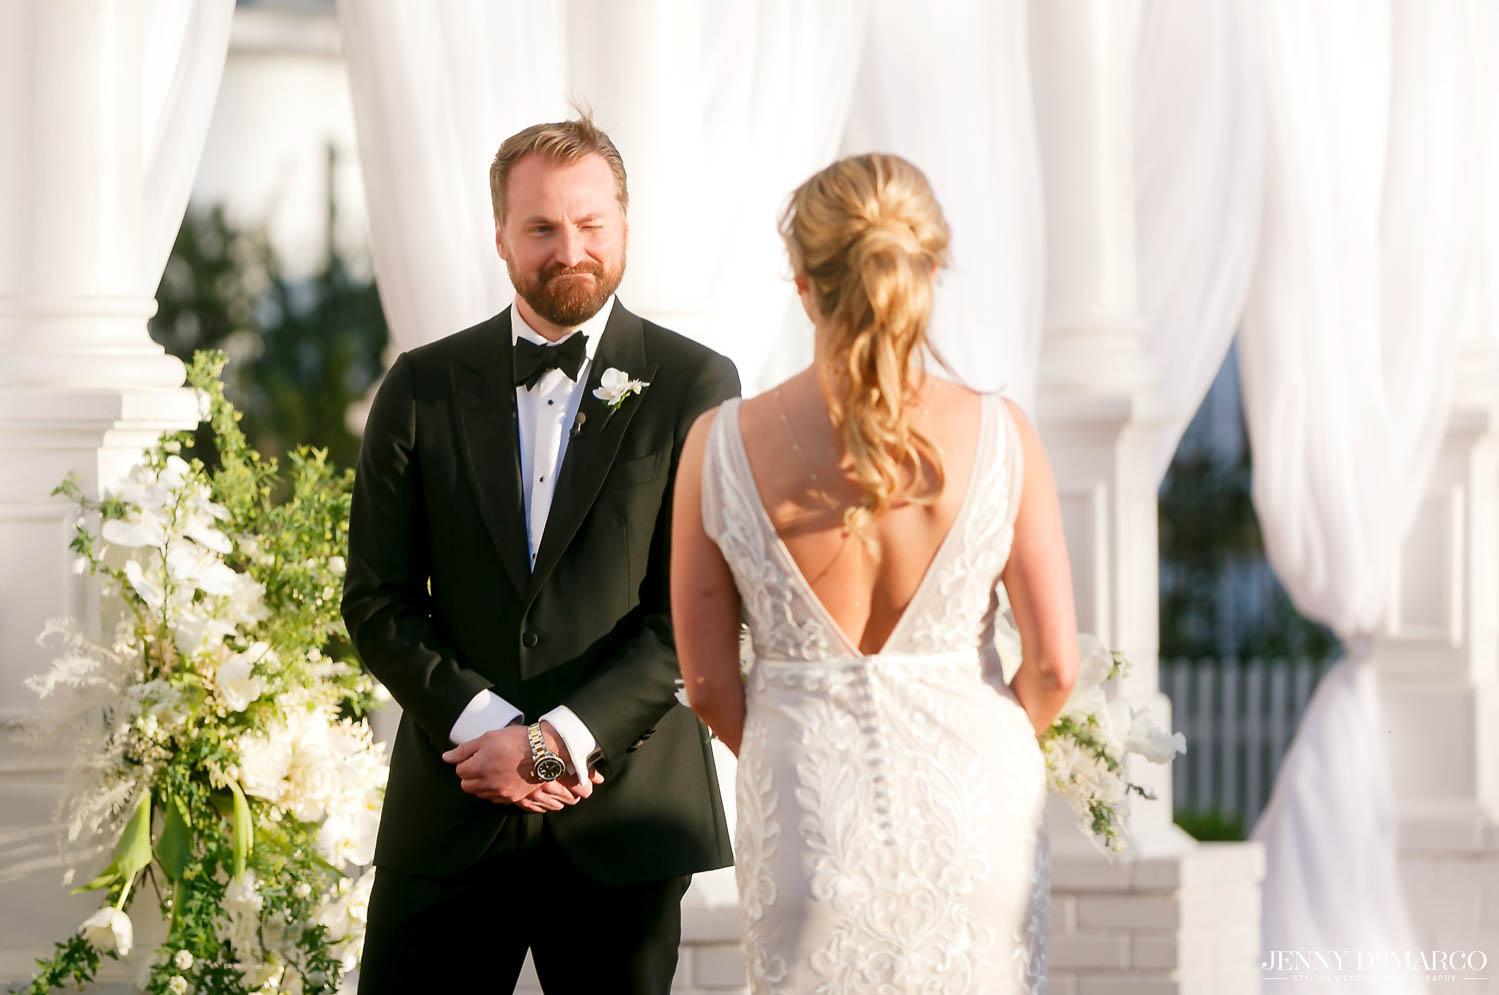 groom winking at bride as she walks up to the center of the ceremony